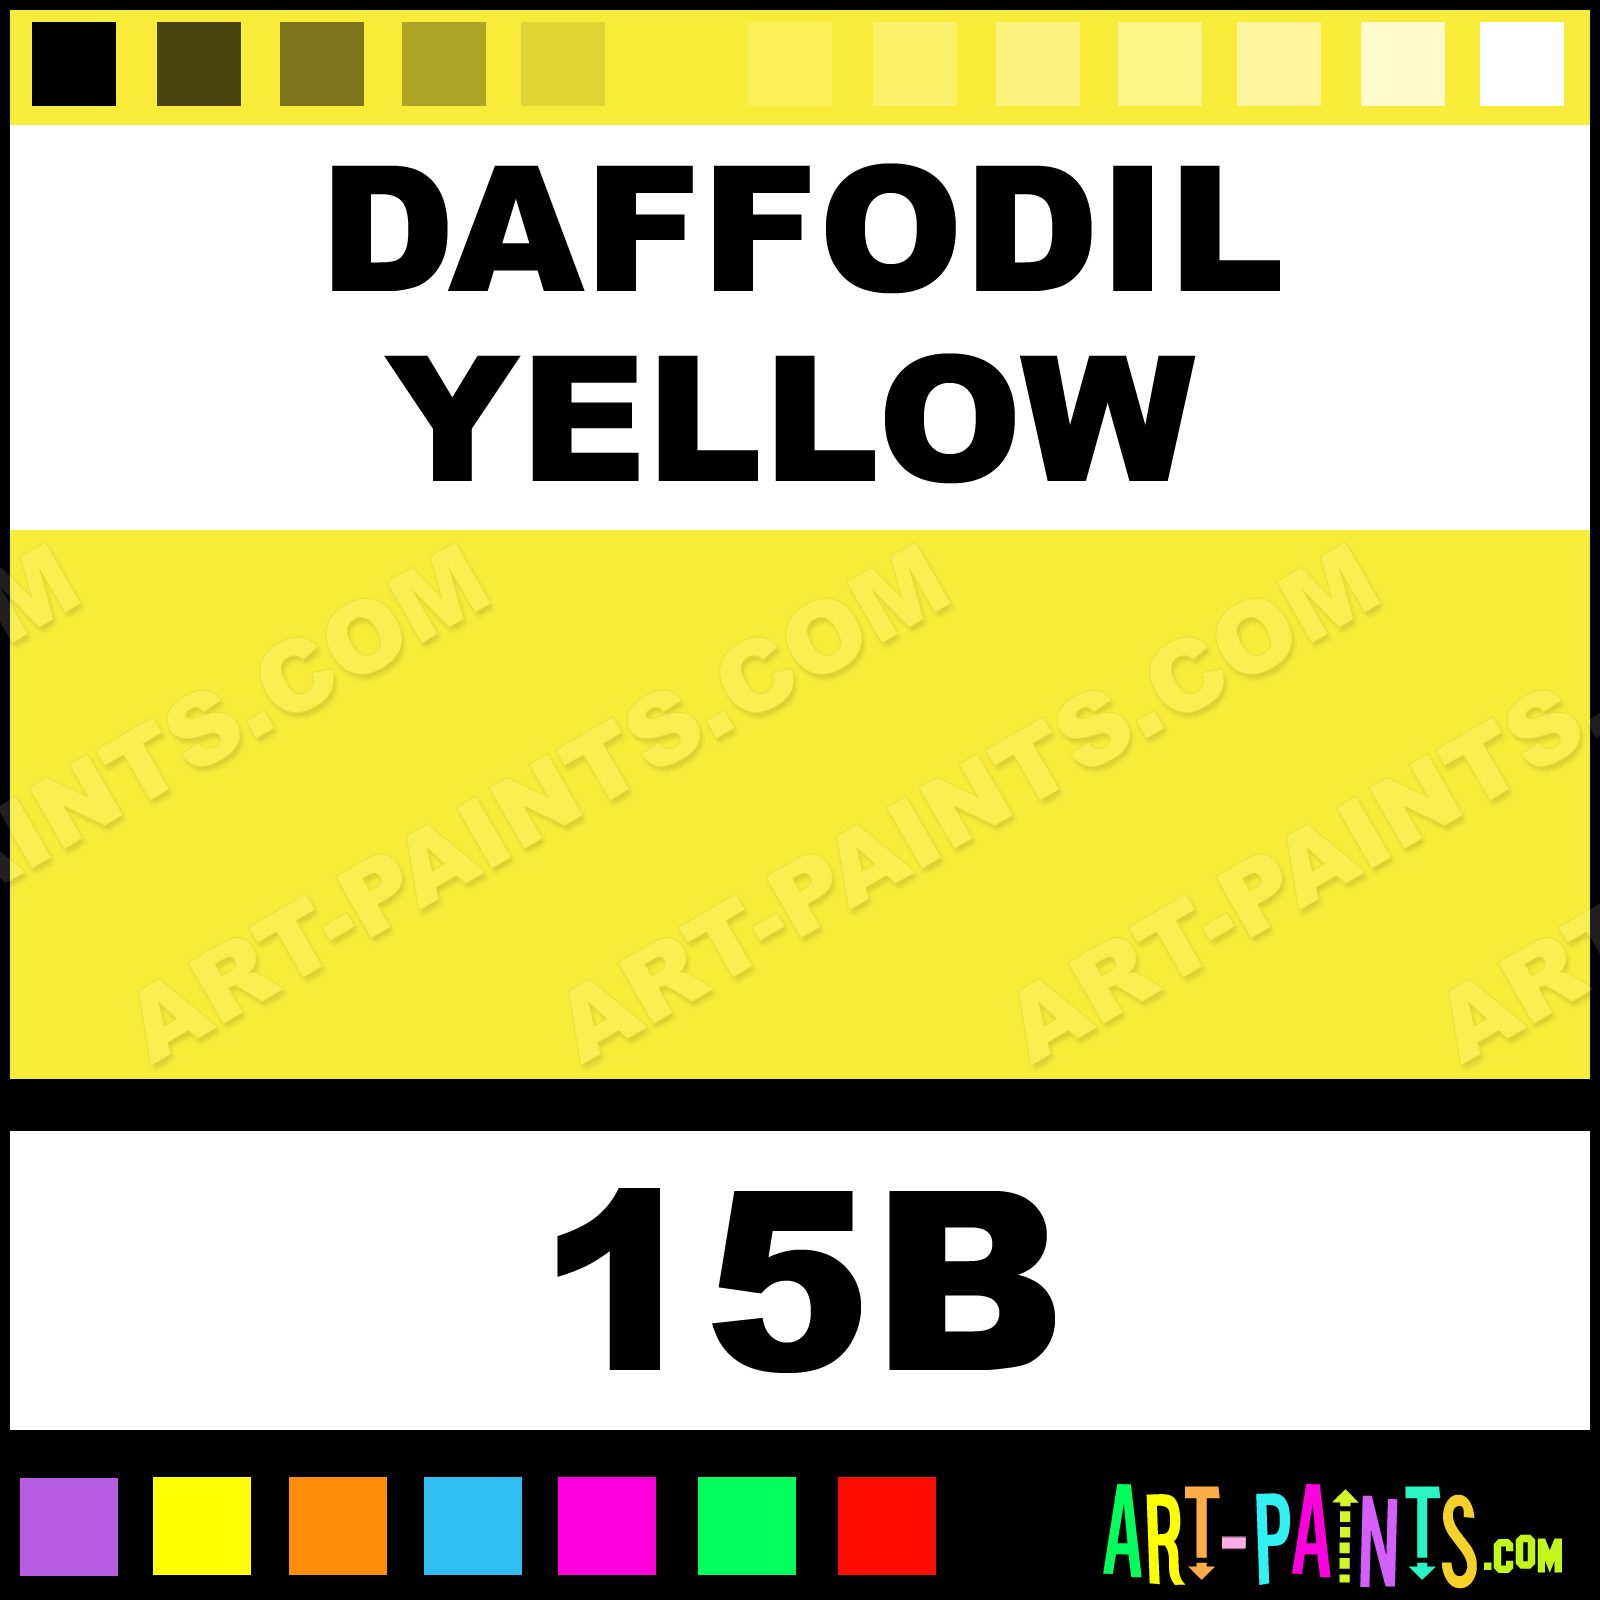 daffodil yellow radiant watercolor paints - 15b - daffodil yellow